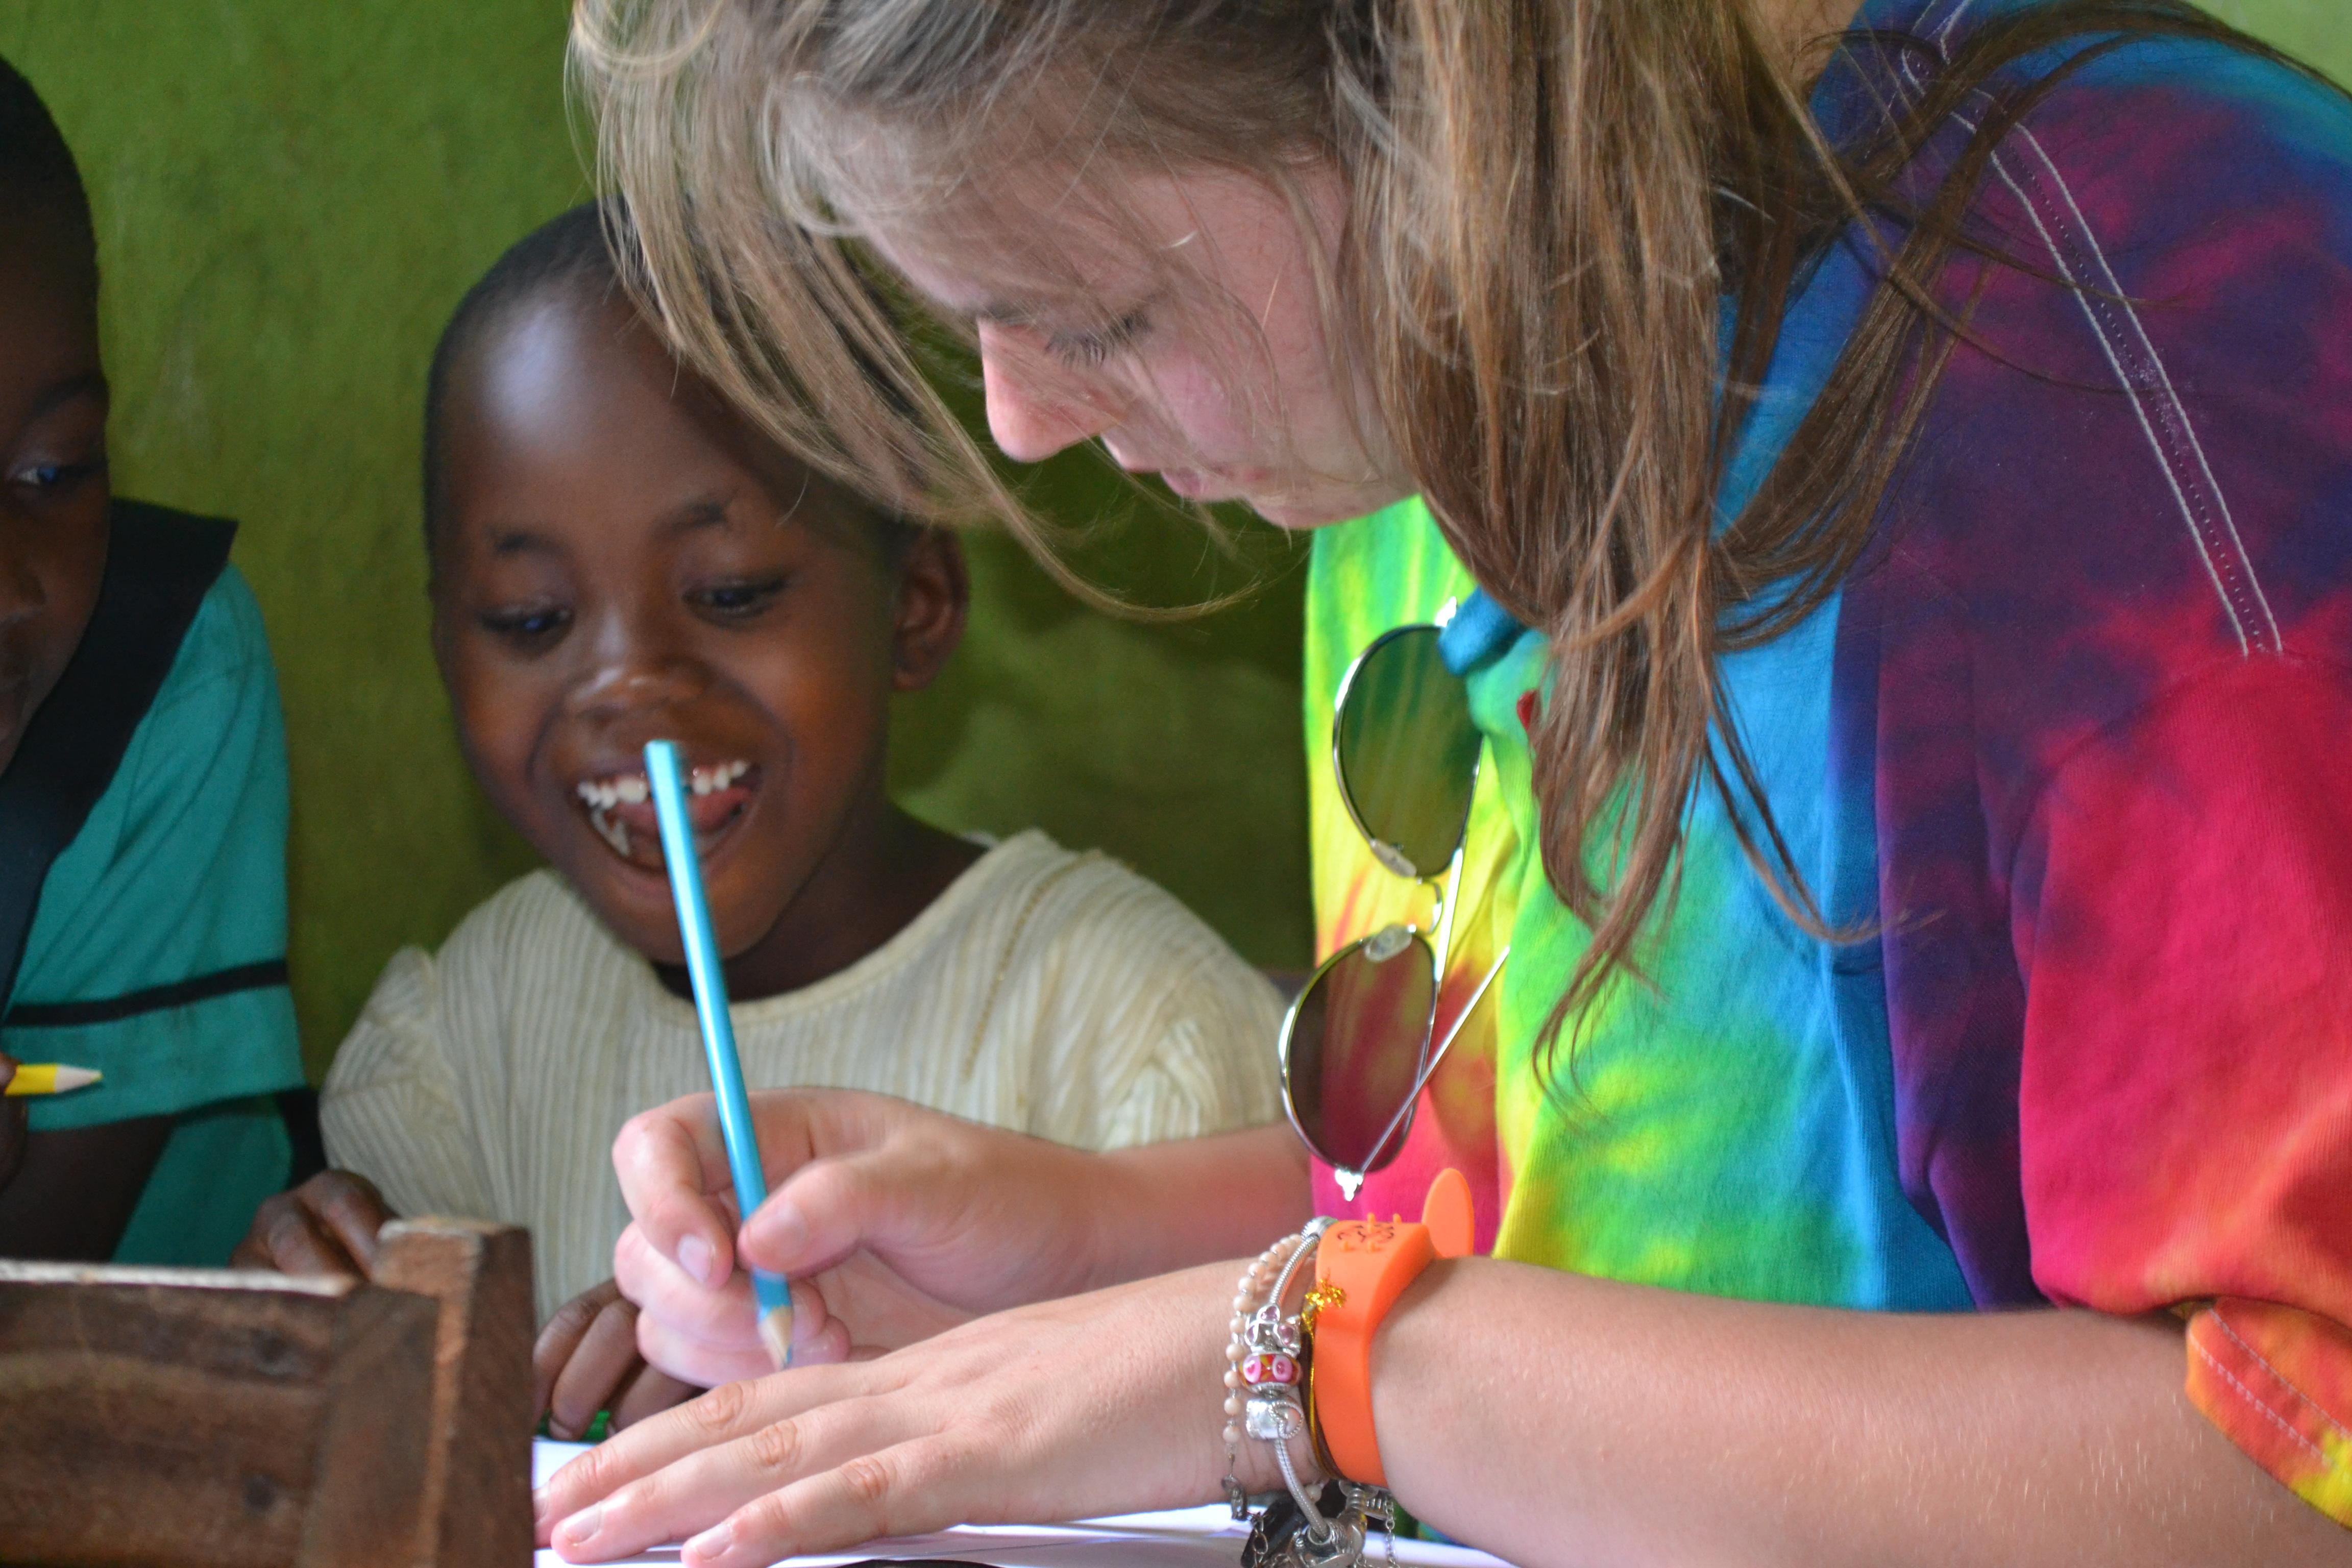 As part of community work in Ghana, Projects Abroad volunteers on a group trip help teachers and caregivers with activities in the classroom.